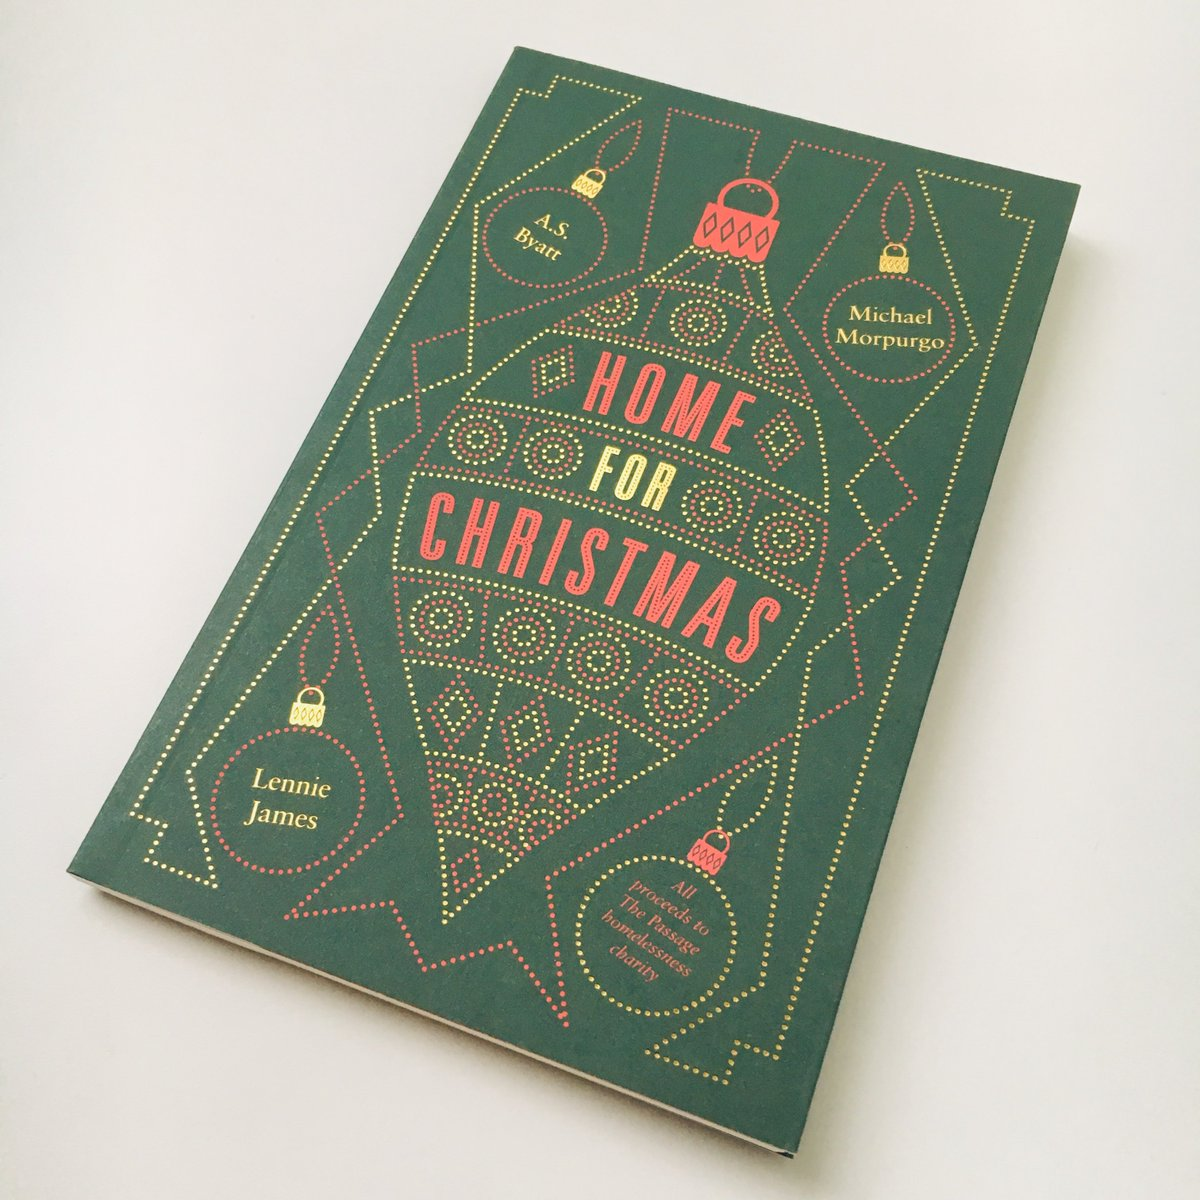 This Christmas were helping to raise funds for @PassageCharitys work to end homelessness through this gorgeous book, Home For Christmas, featuring stories by A. S. Byatt, Lennie James & Michael Morpurgo. Available from today in our London shops.